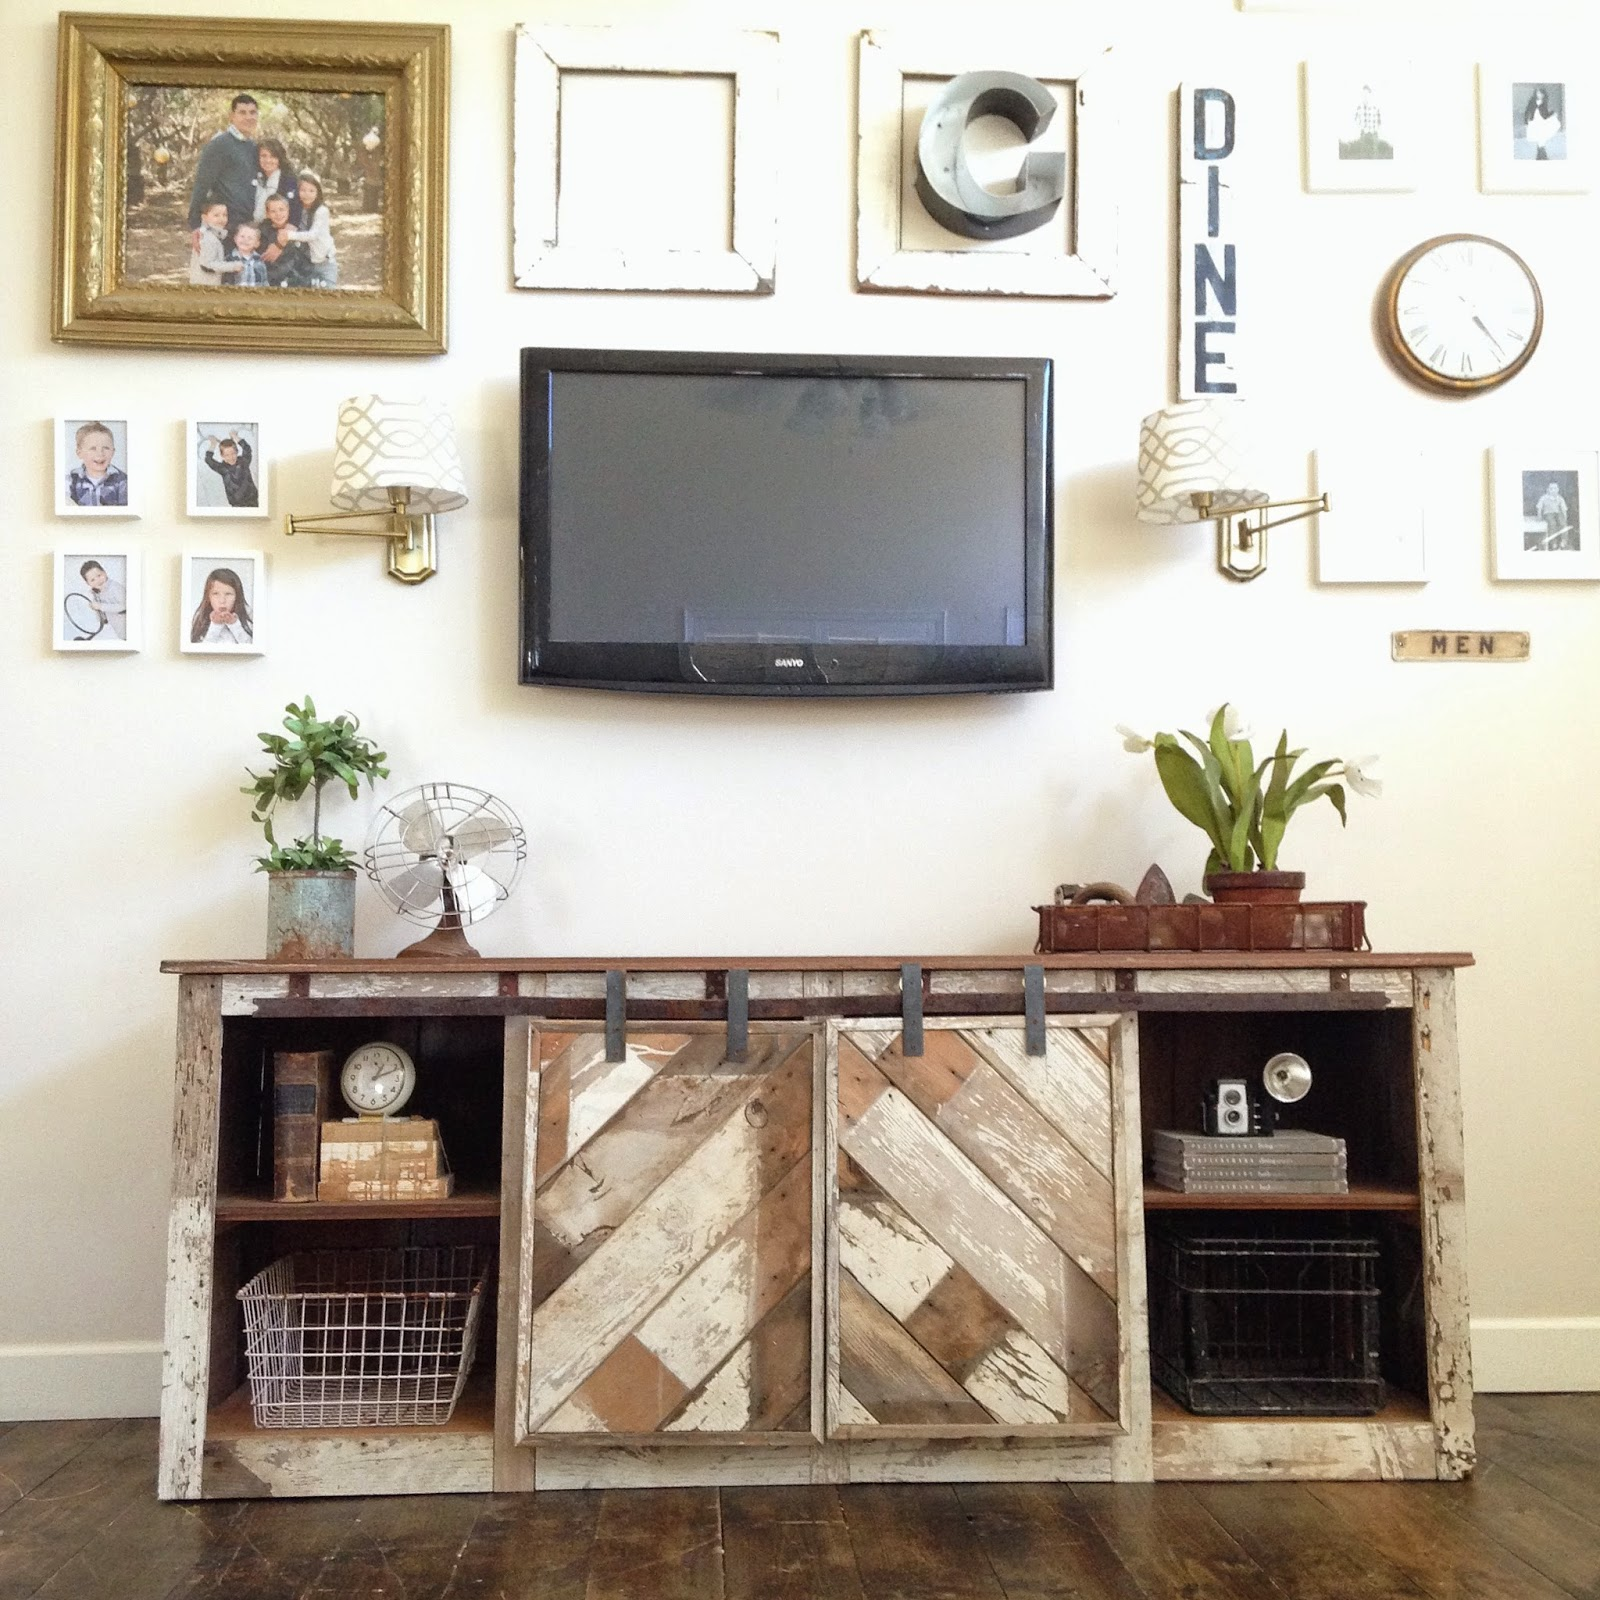 Kitchen Cabinet Trash Ana White Grandy Sliding Door Console Diy Projects